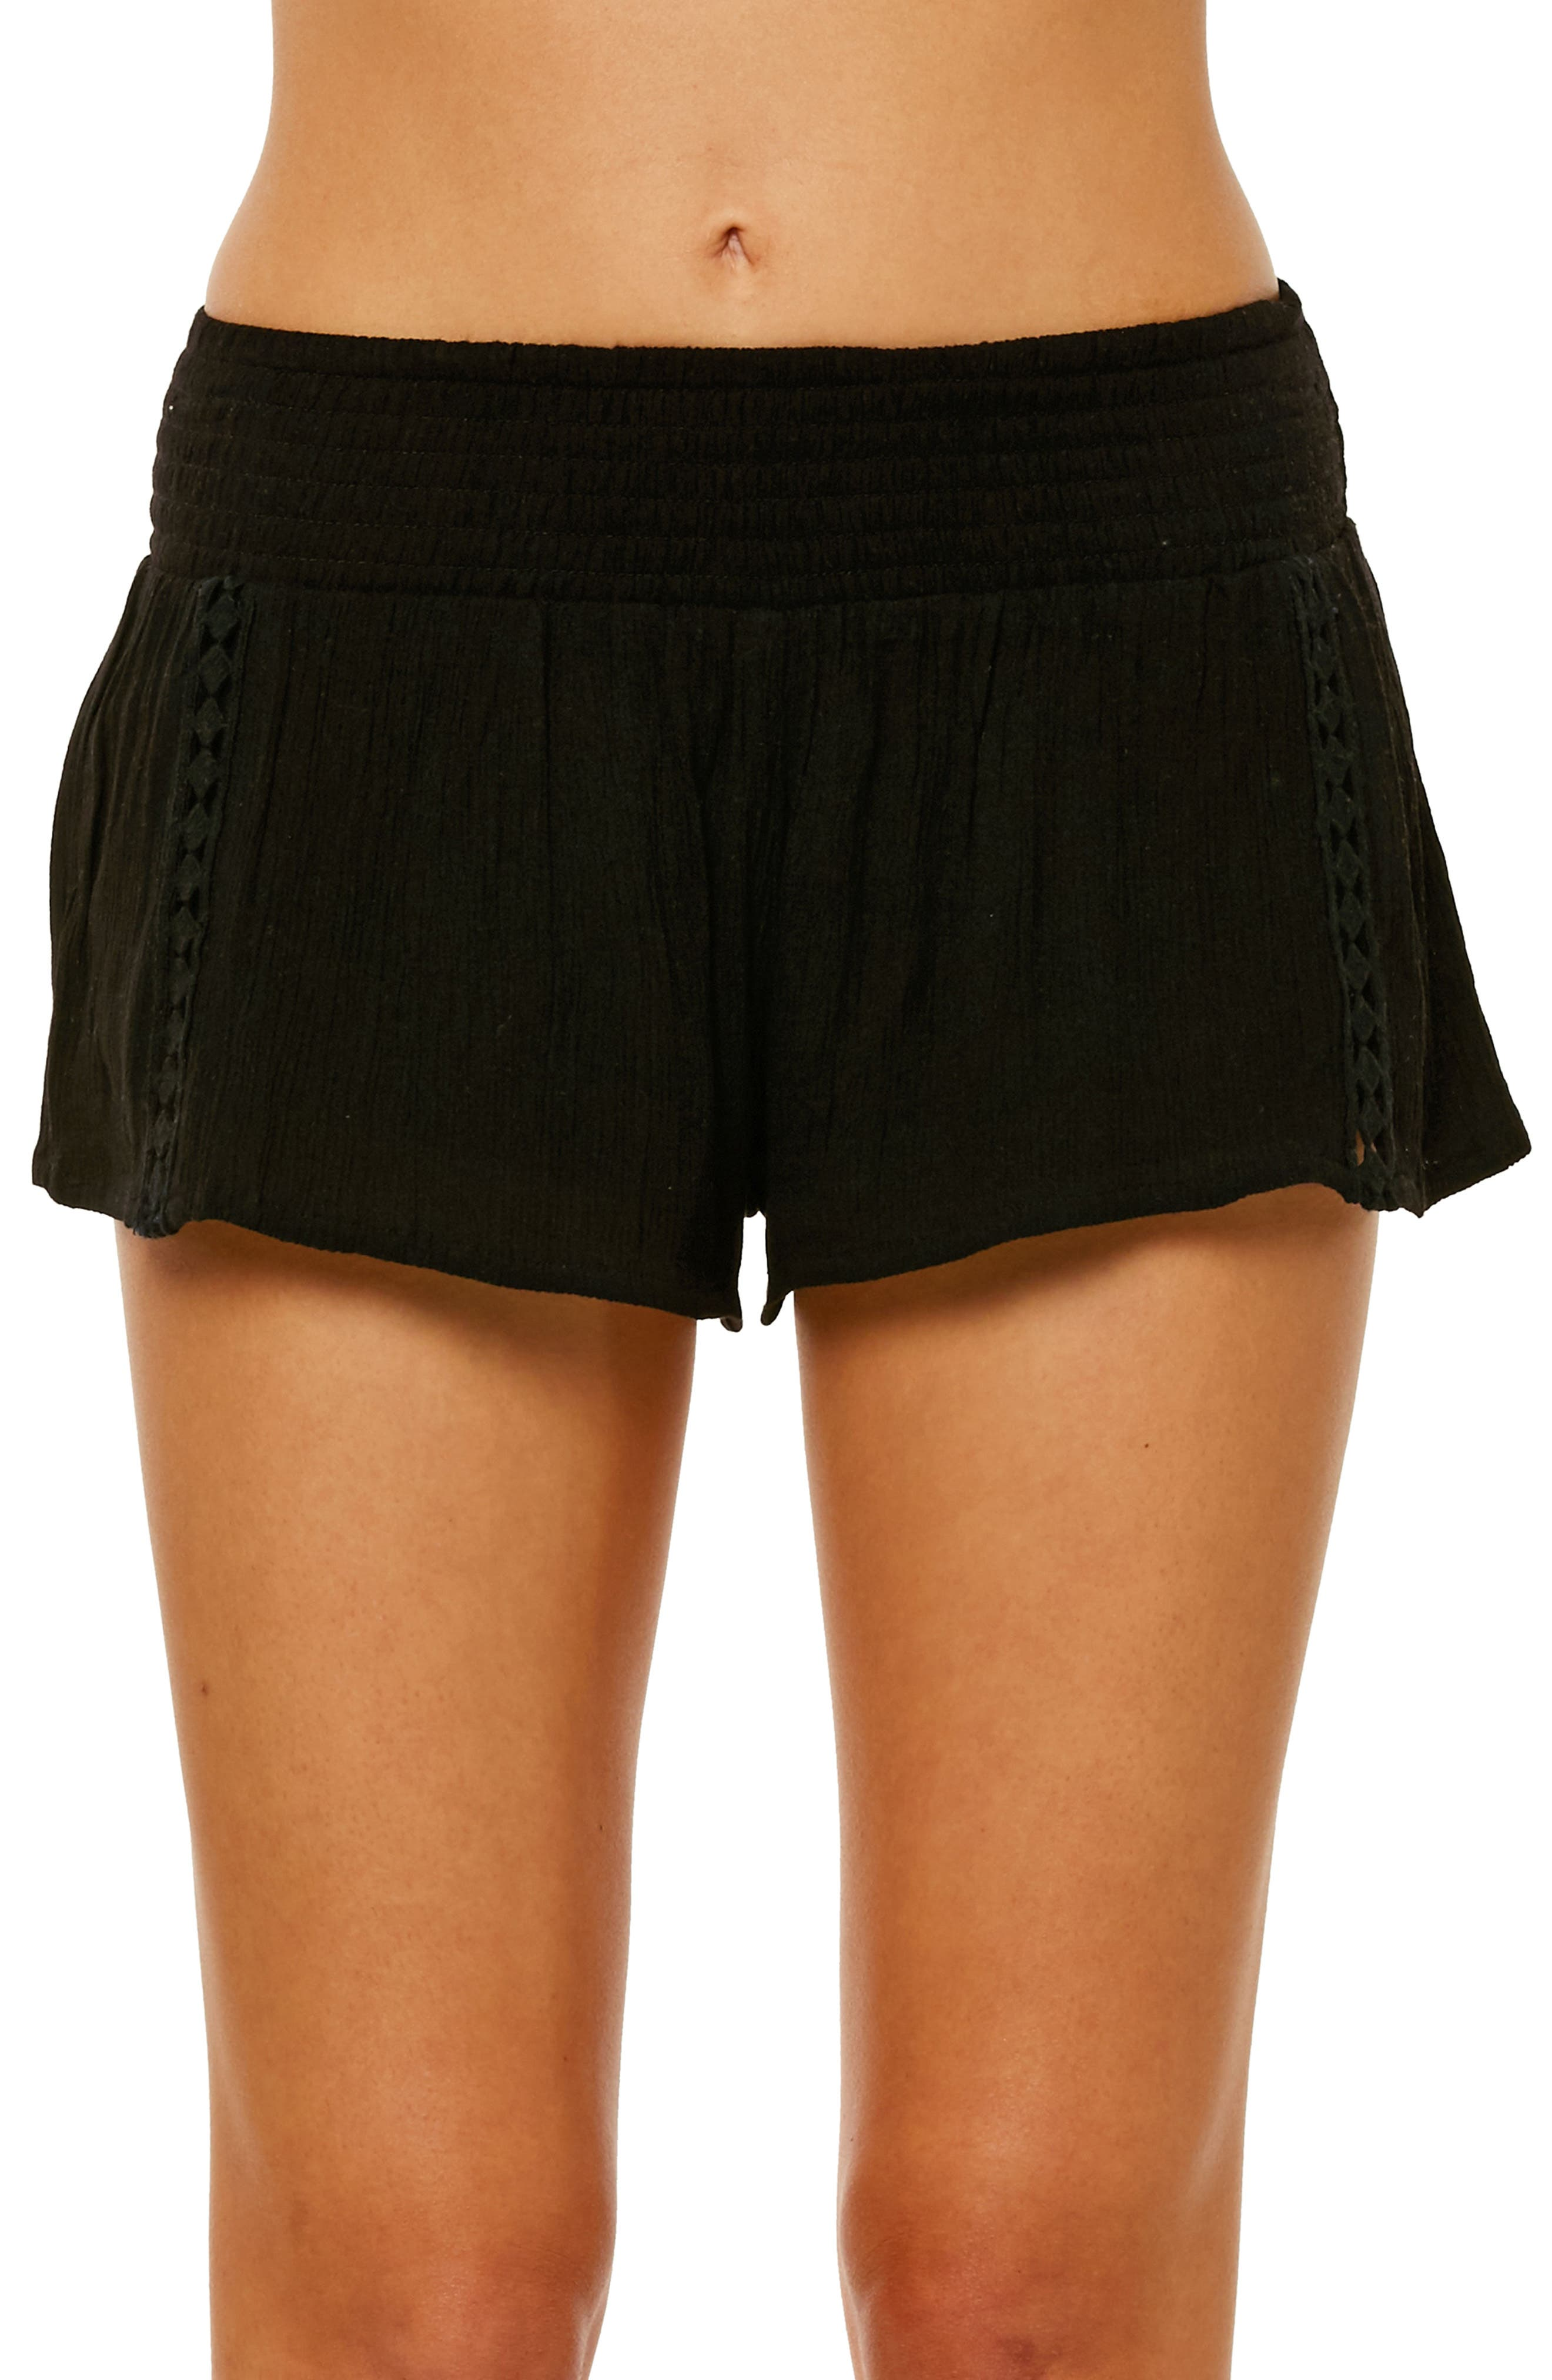 Elise Crochet Trim Shorts,                             Main thumbnail 1, color,                             Black